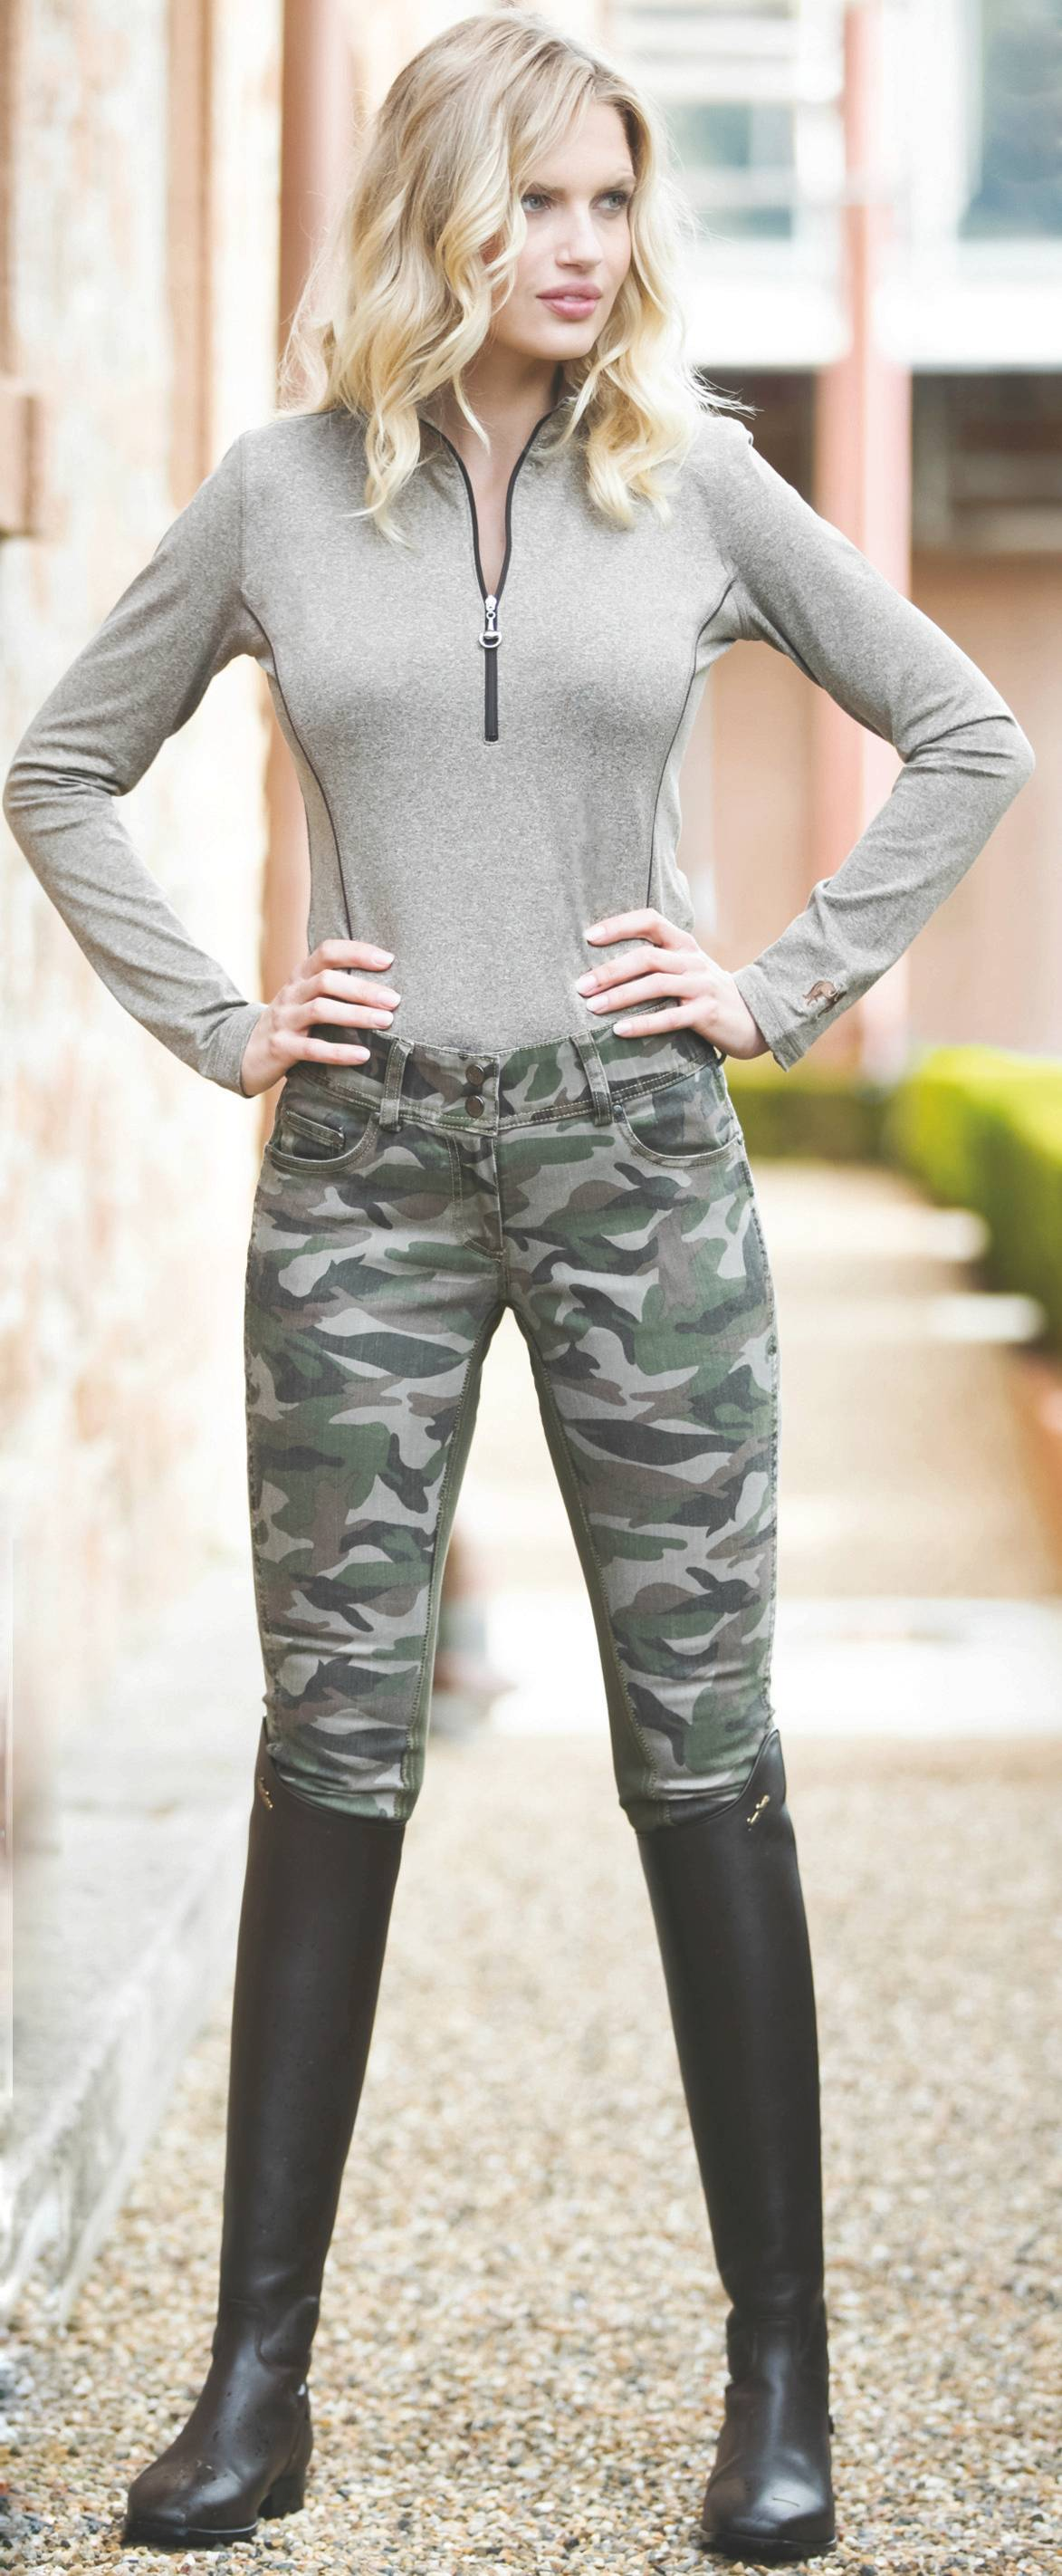 Goode Rider Ladies Jean Rider Full Seat Breeches - Camouflage